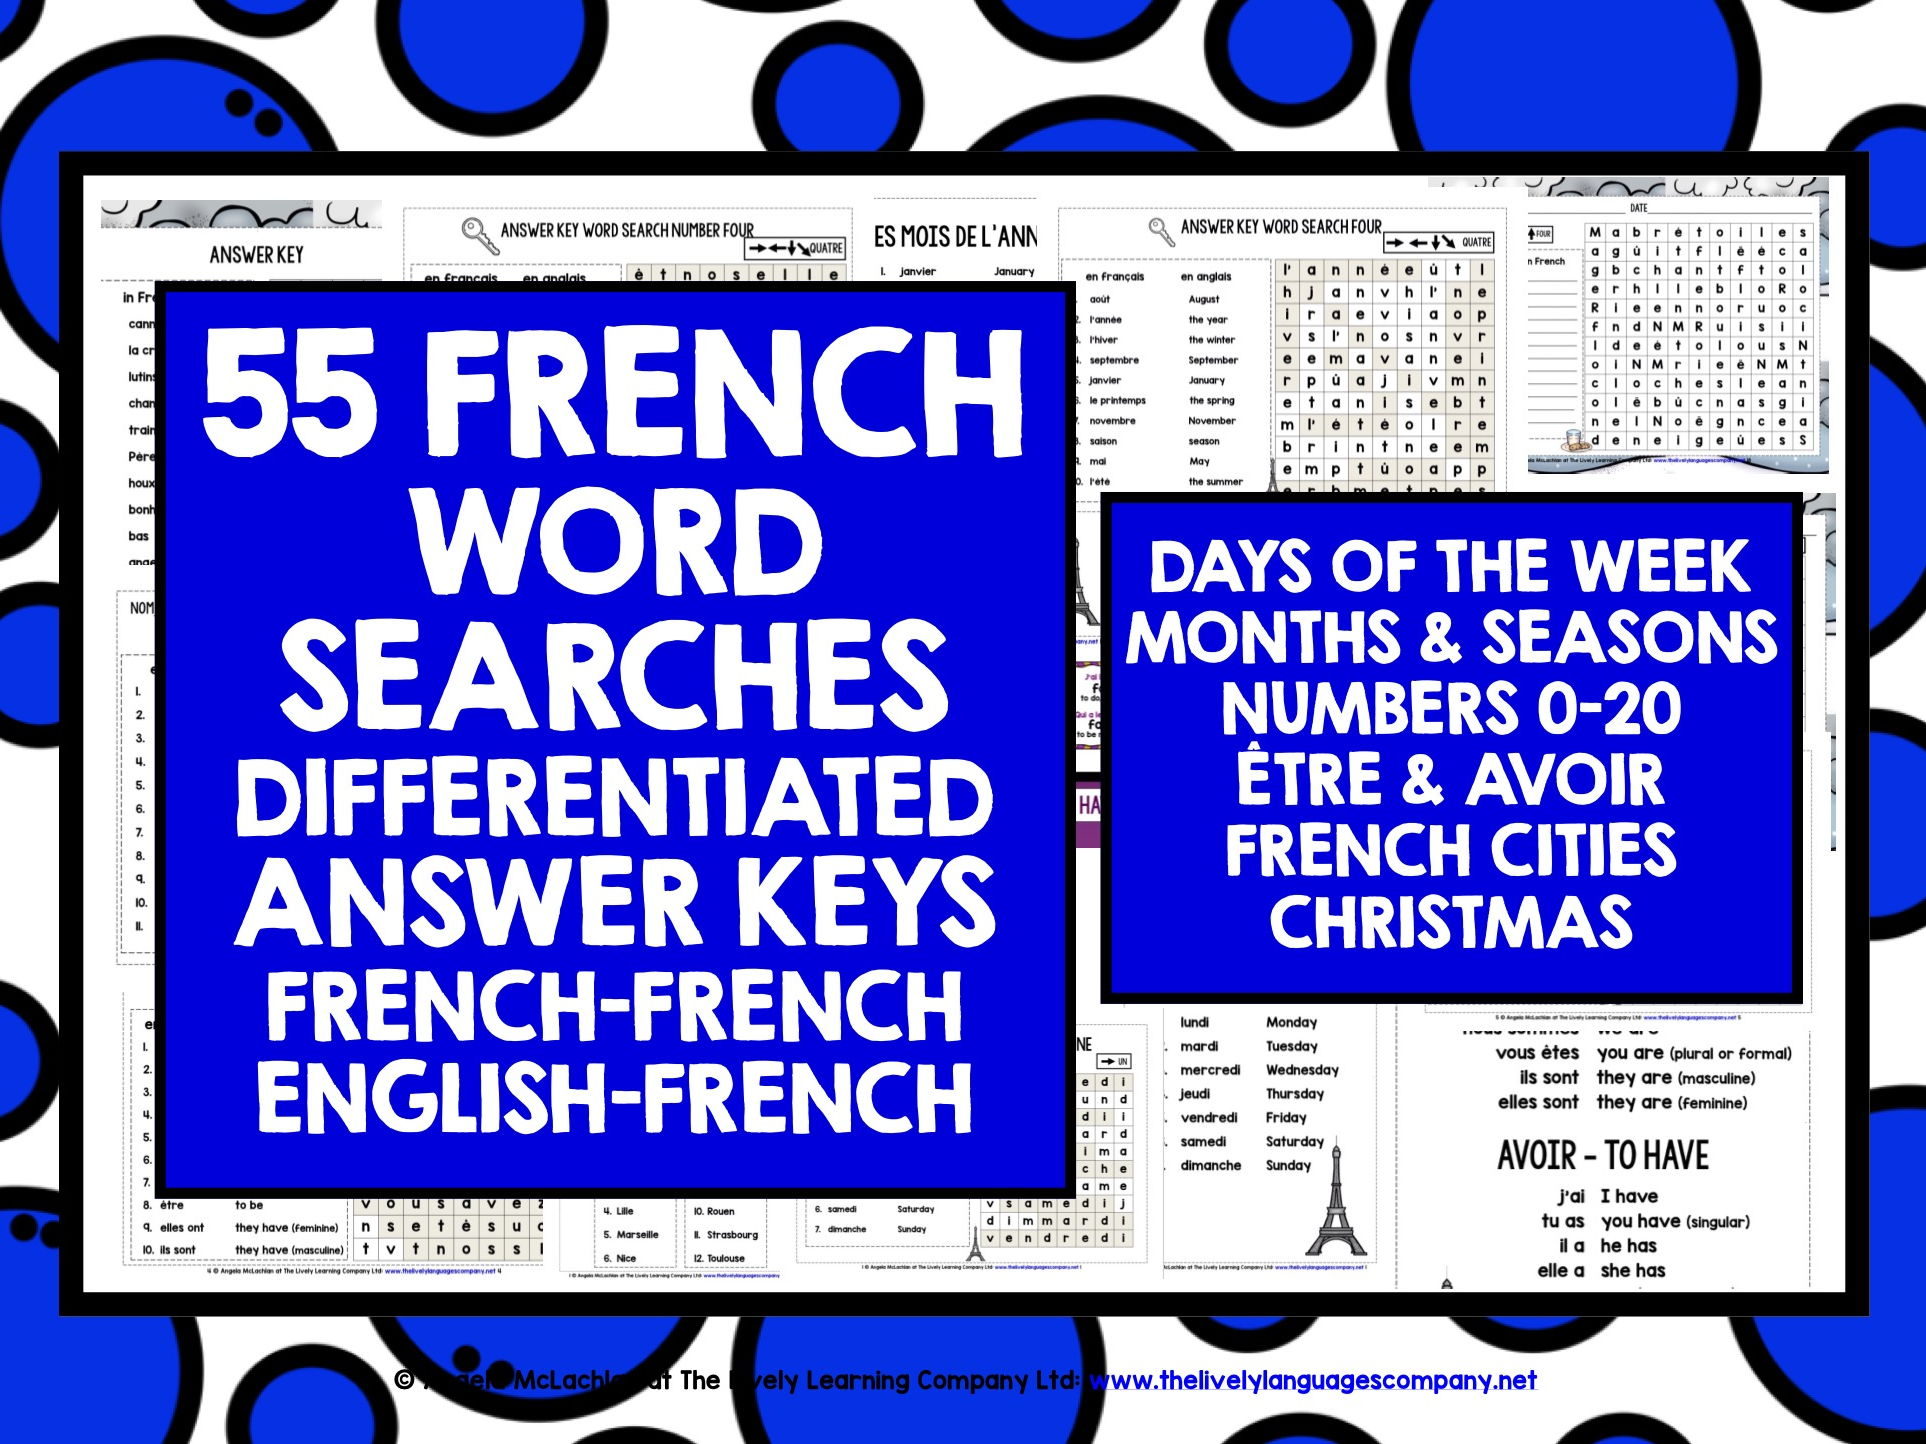 FRENCH WORD SEARCHES 1